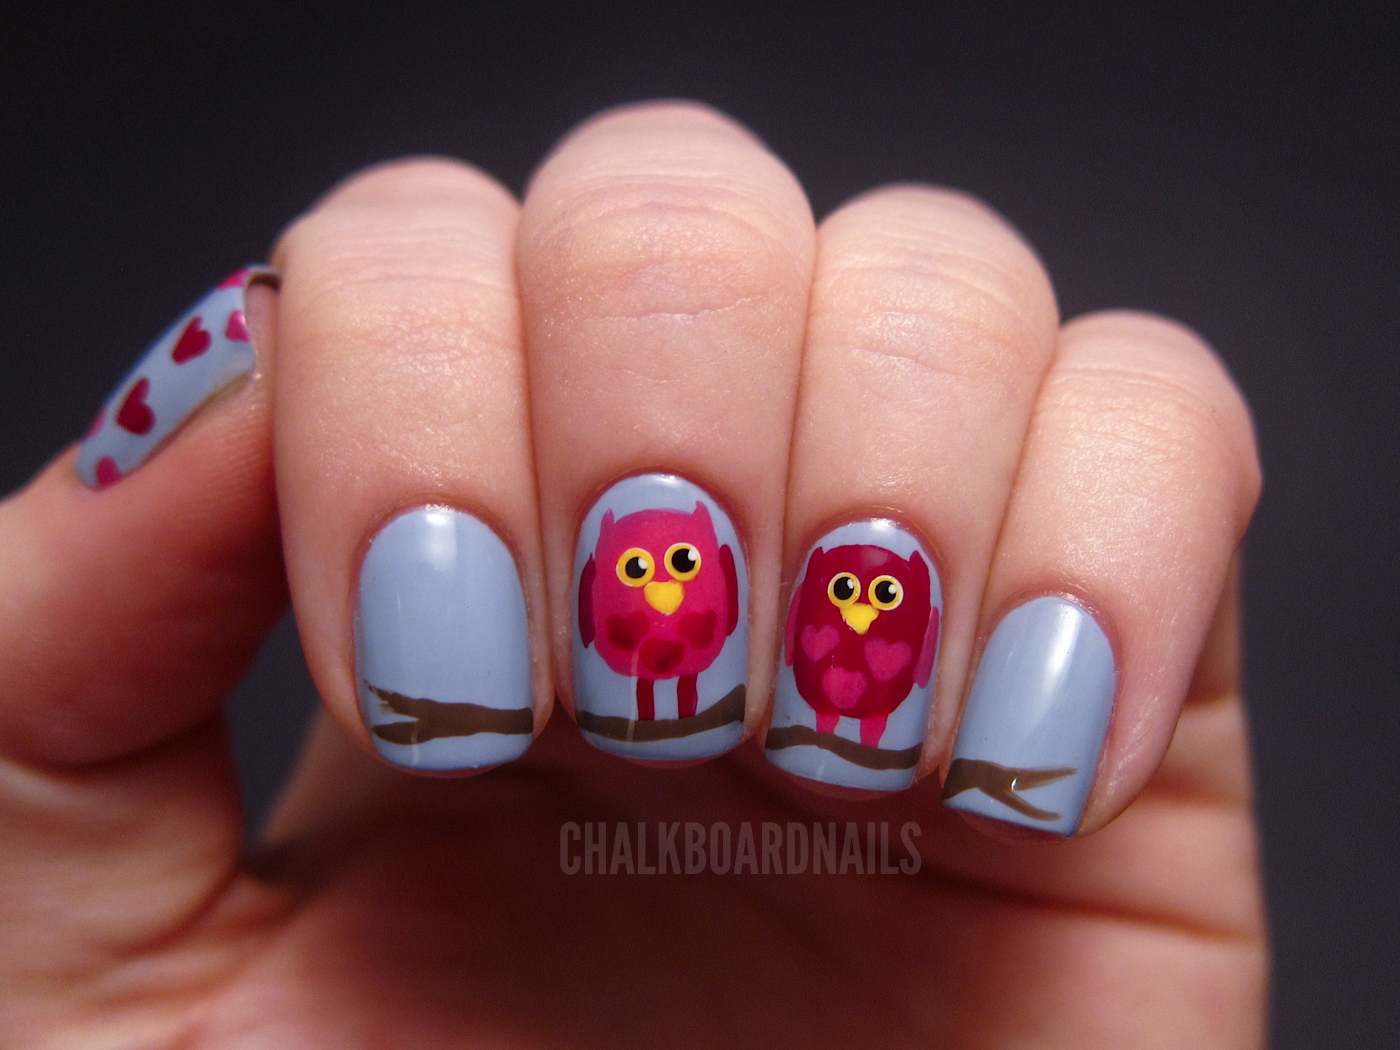 Thursday, February 2, 2012 - Whoo Loves You? Chalkboard Nails Nail Art Blog